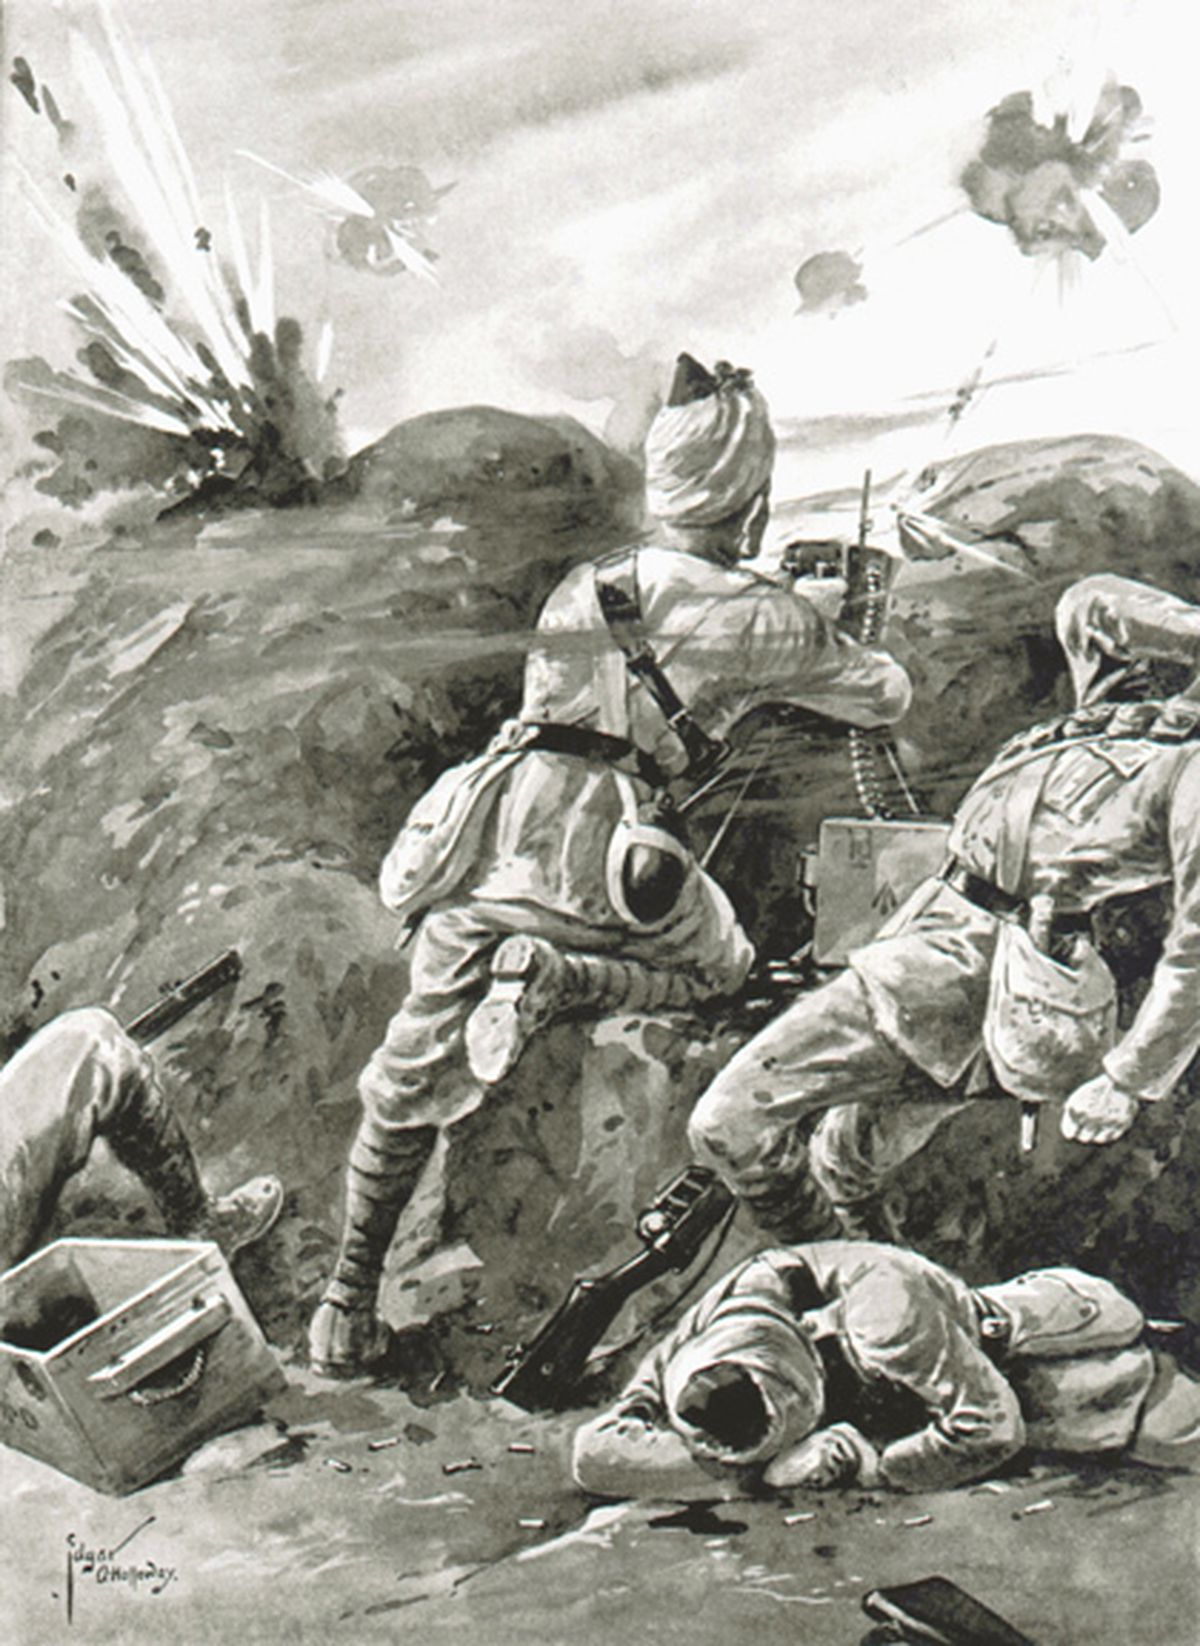 Sepoy Khudadad Khan was awarded the VC for his heroics during the Battle of Ypres